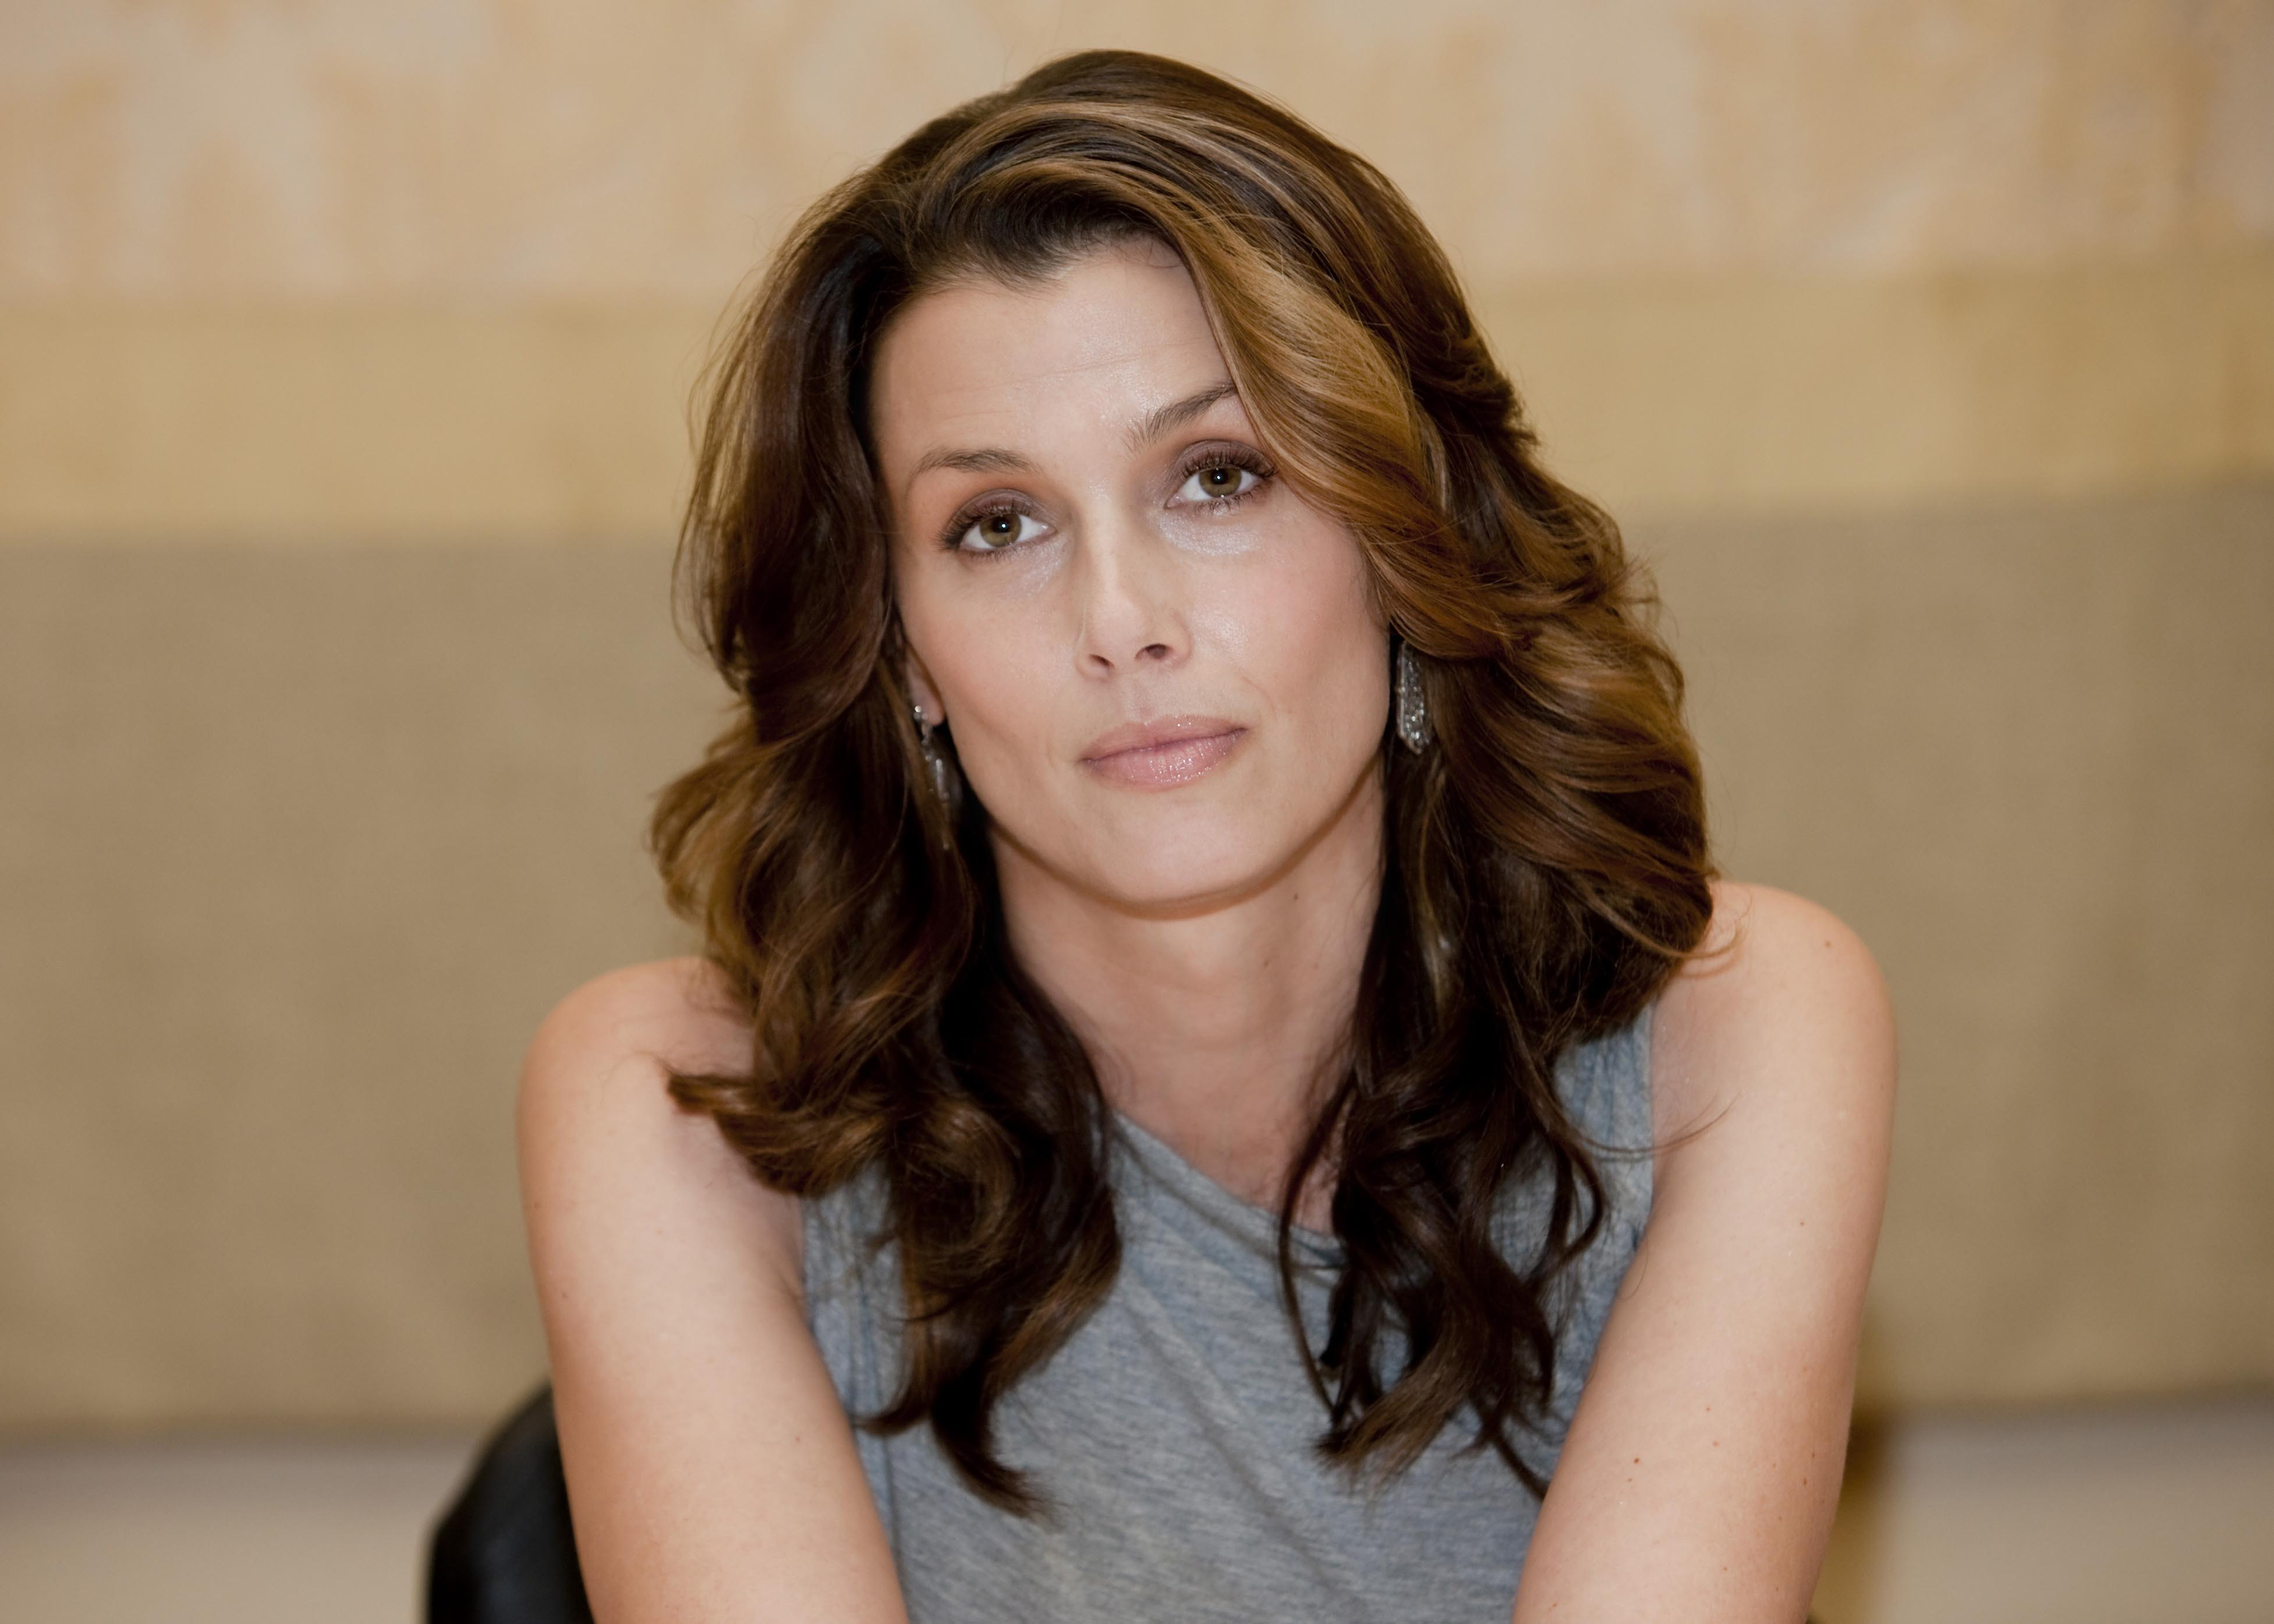 Bridget Moynahan Photos, News and Videos | Just Jared